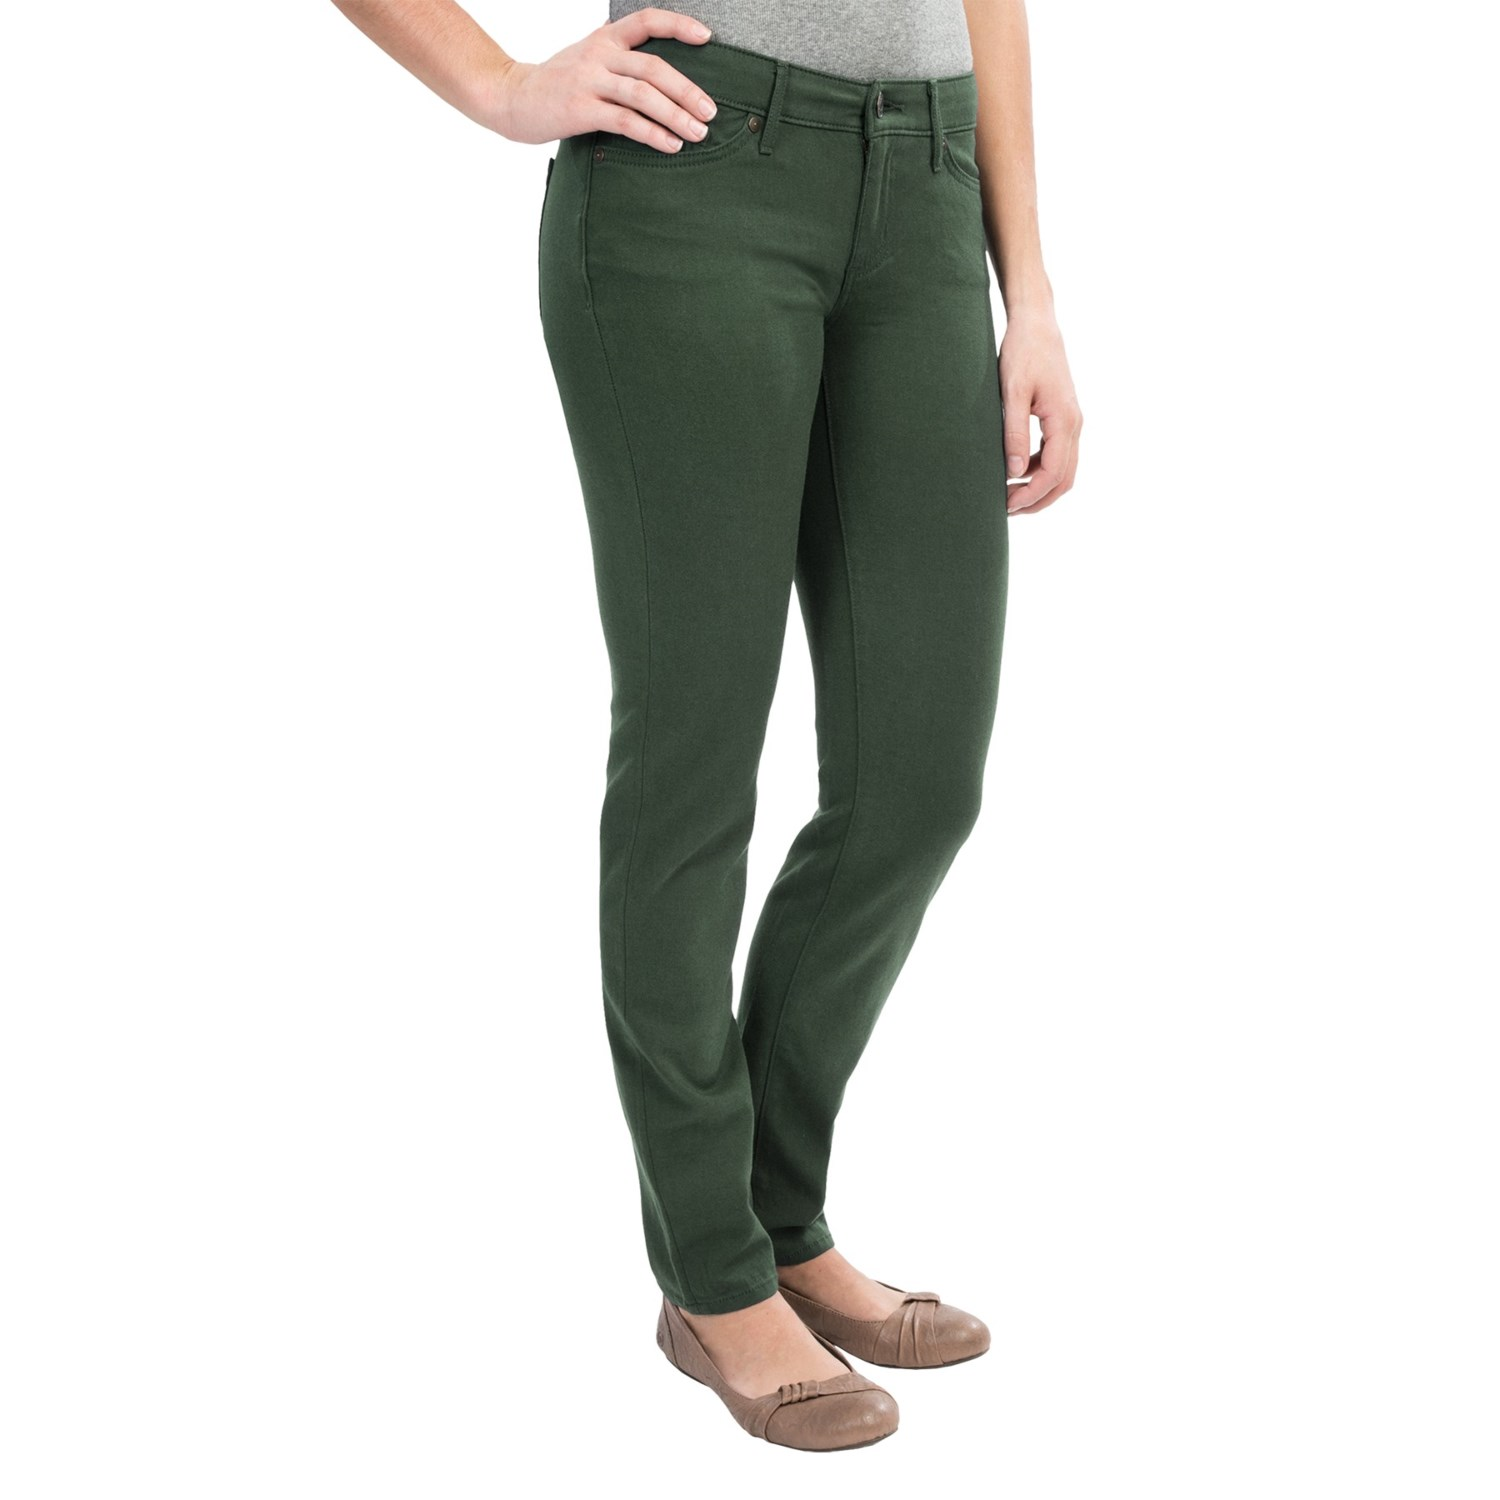 """Our Skinny Jean is the ultimate """"cool girl"""" fit made for every day. The low rise hugs your curves. The skinny thigh, slim leg and skinny leg opening give you a look that's both casual cool and easy to wear with heels for a going out look."""